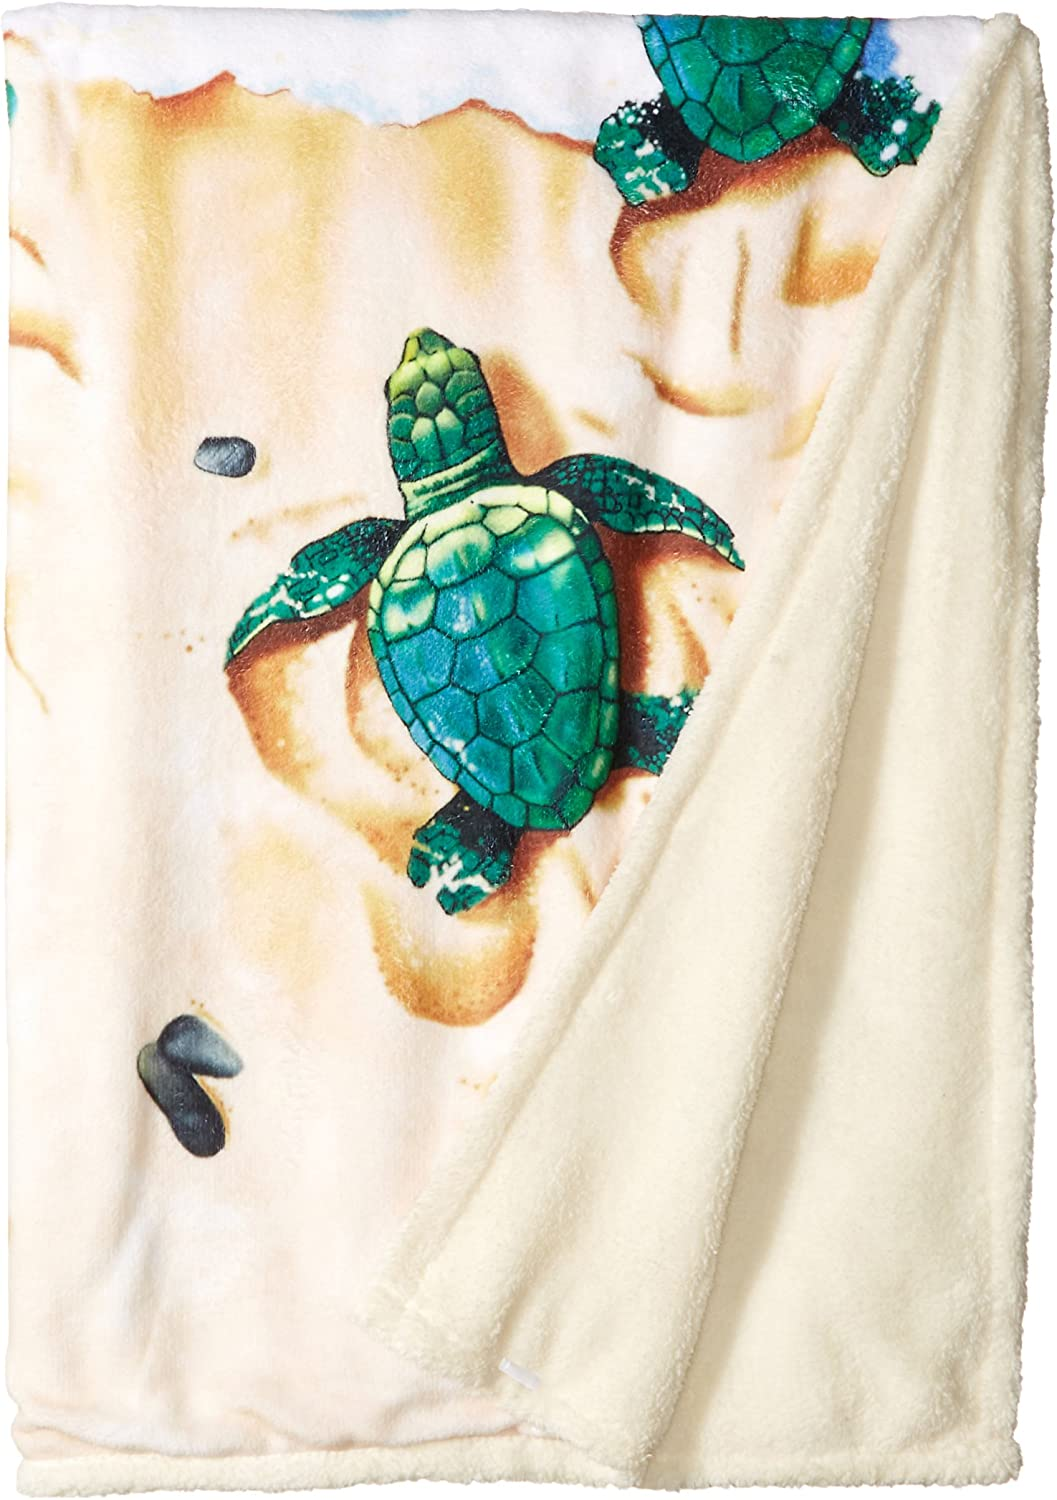 "Liquid Blue Men's Nature Aquatic Turtle Beach Warm Coral Fleece Throw Blanket, multi, 50"" X 60"""